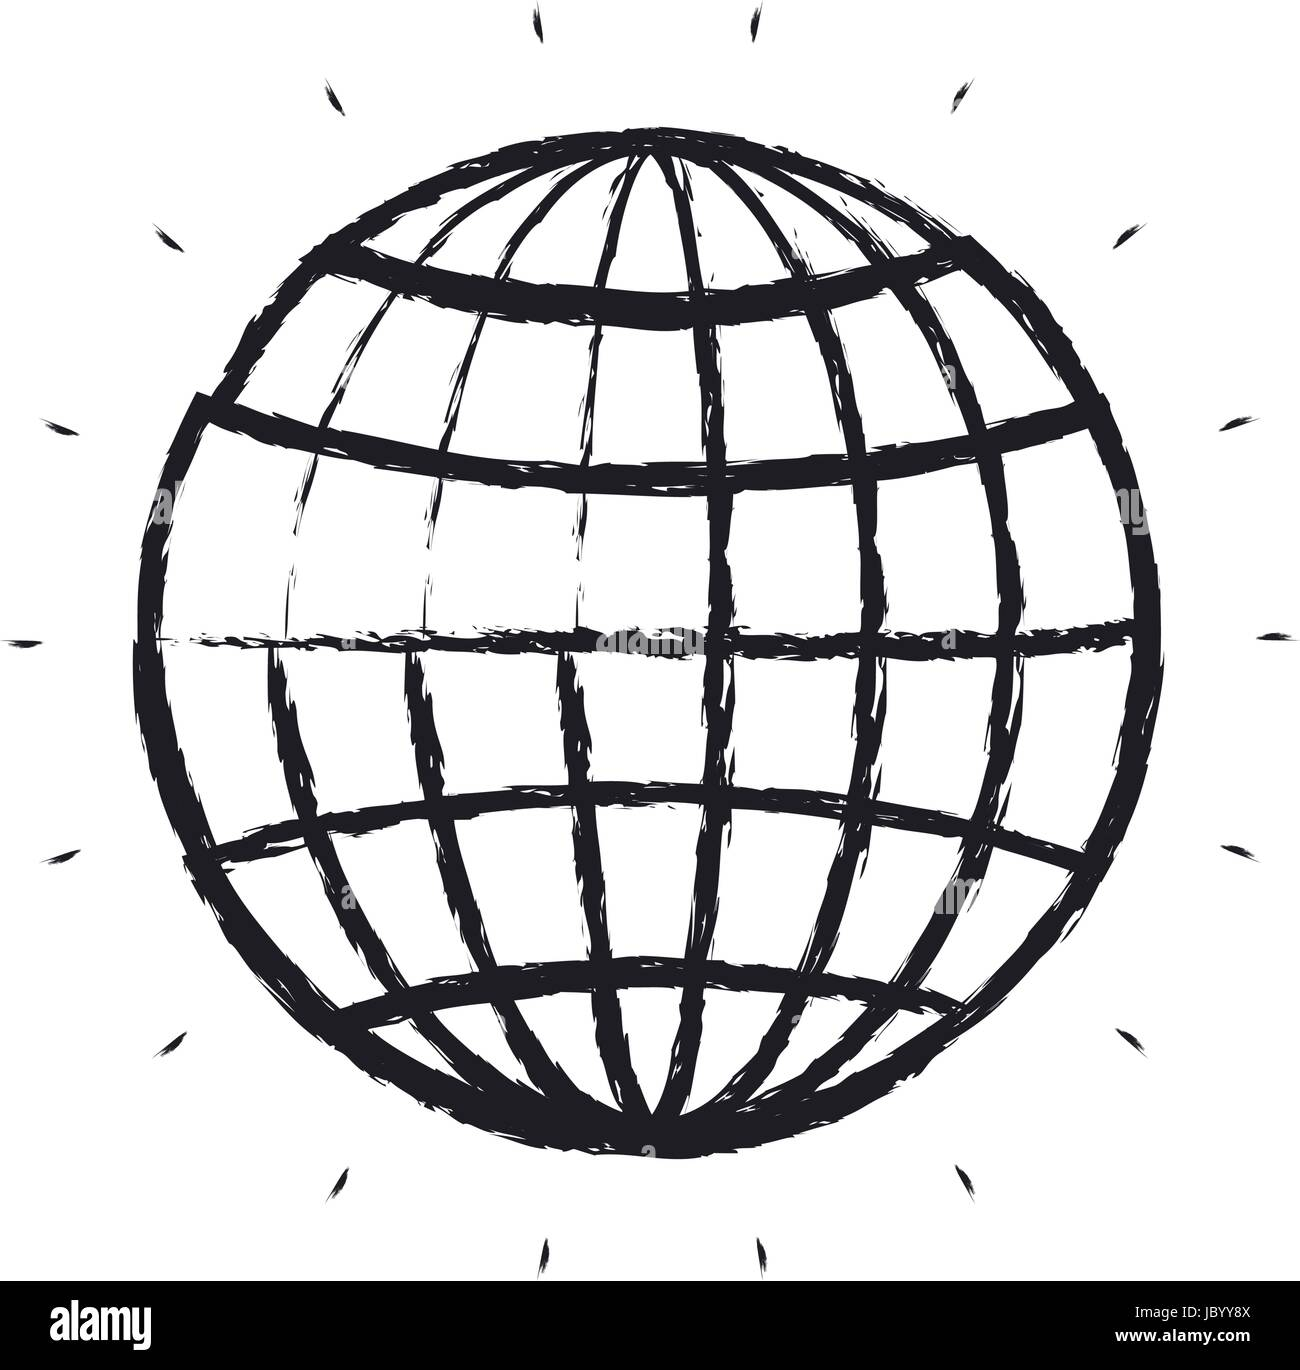 Blurred Silhouette Front View Globe Earth World Chart With Lines